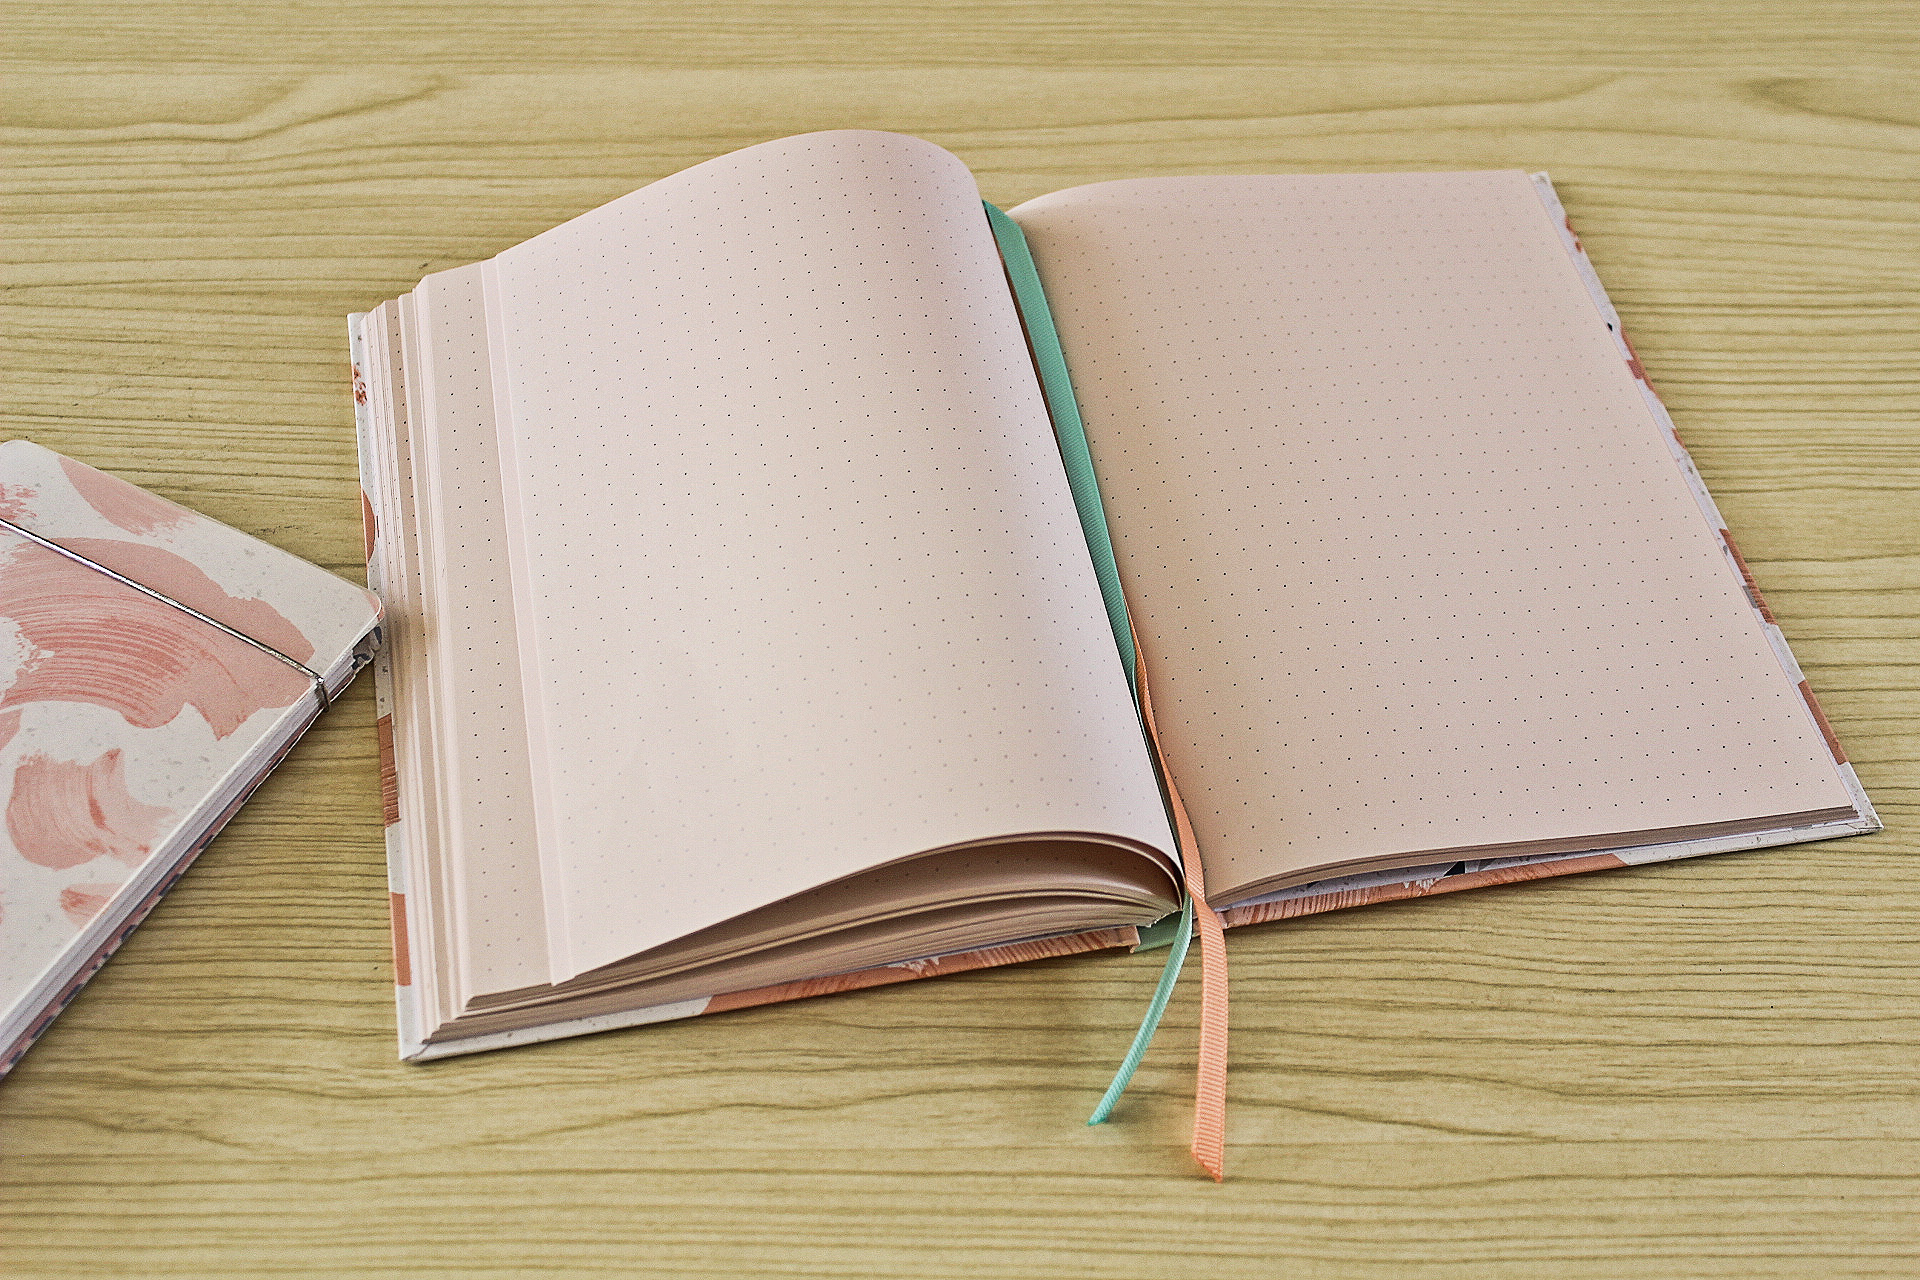 Hot Selling OEM A4 A5 A6 Dotted Journal Notebook with Hard Cover Diary Notebook for Gift and Promotion